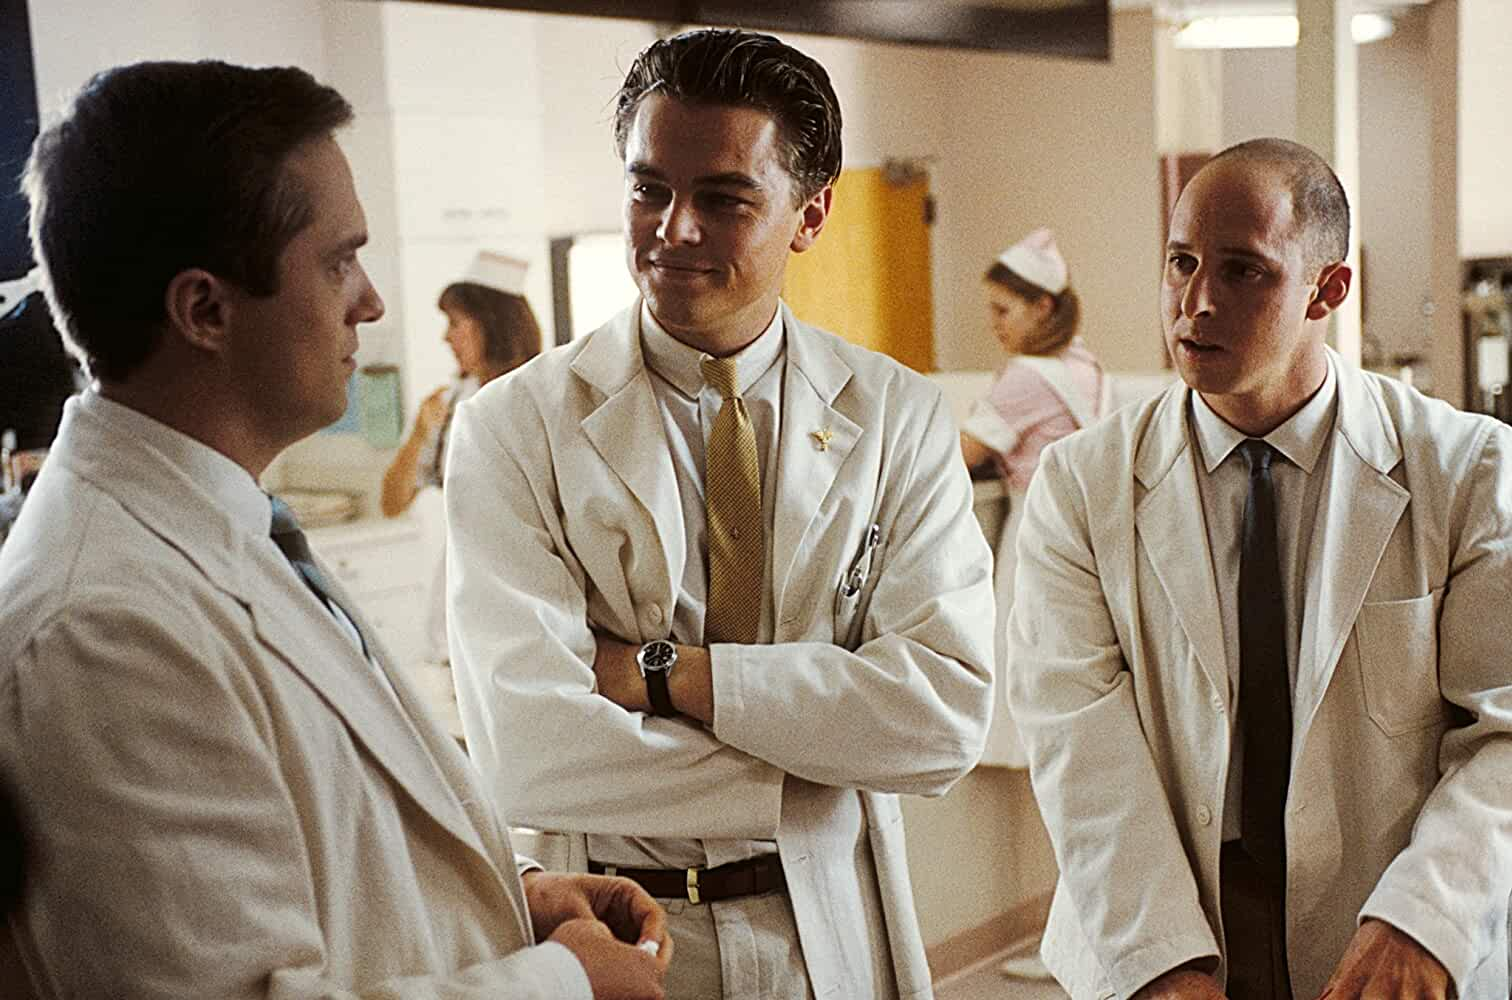 Leonardo DiCaprio, Jonathan Brent, and Shane Edelman in Catch Me If You Can (2002)